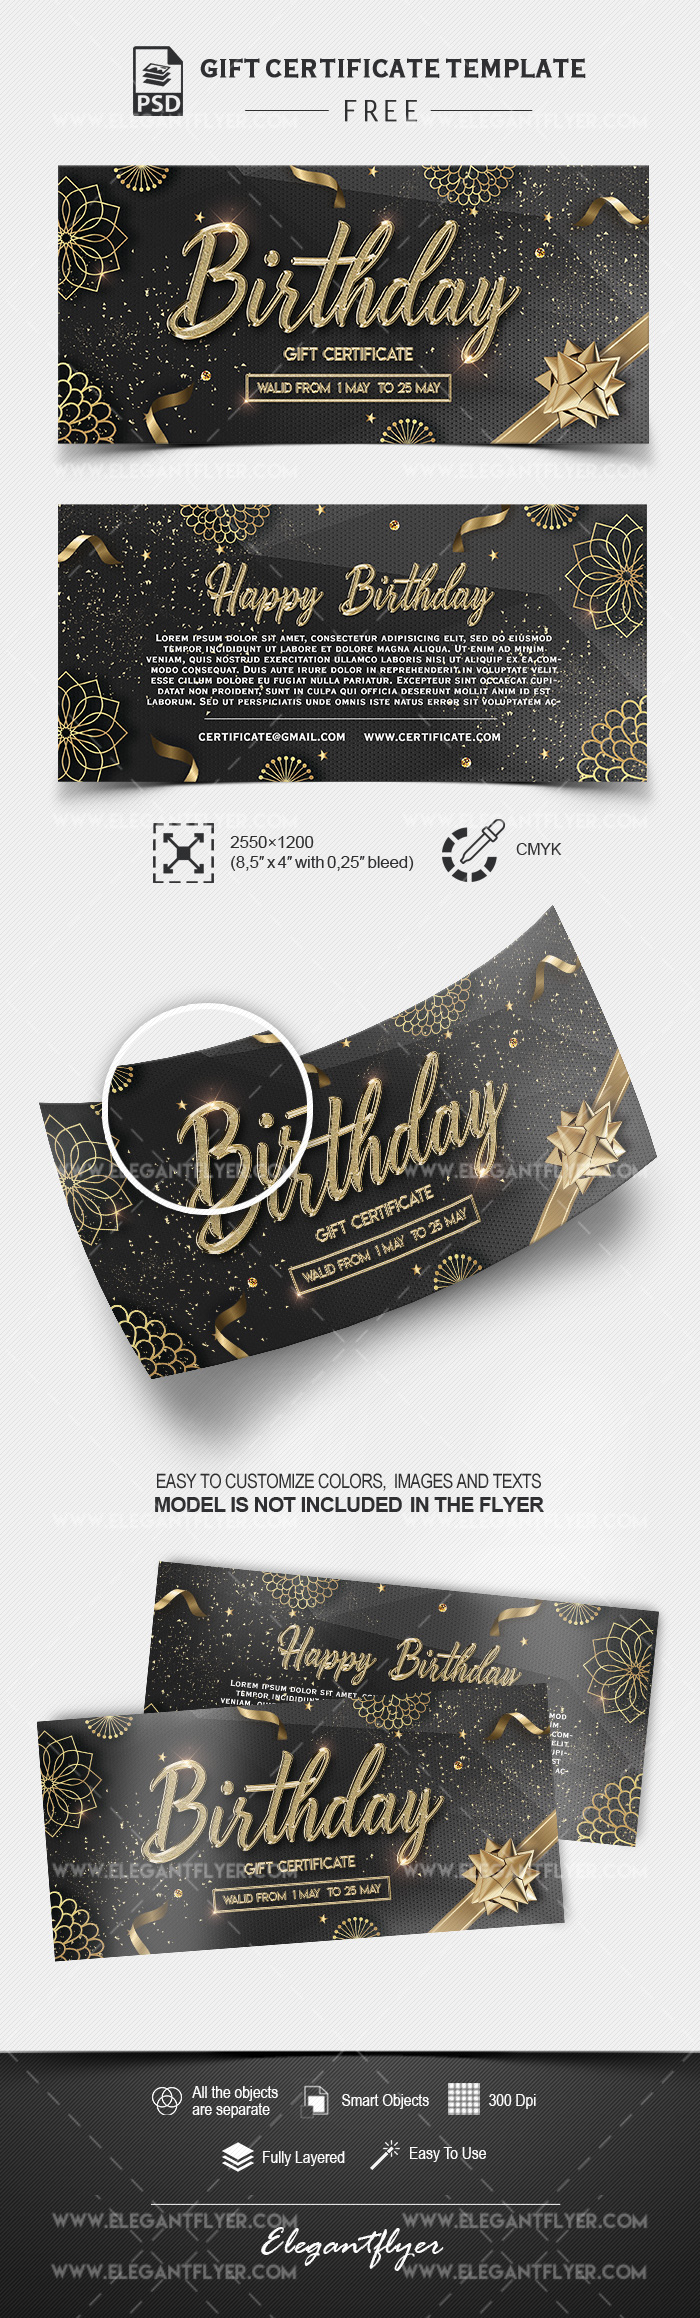 Birthday Gift Certificate – Free PSD Template